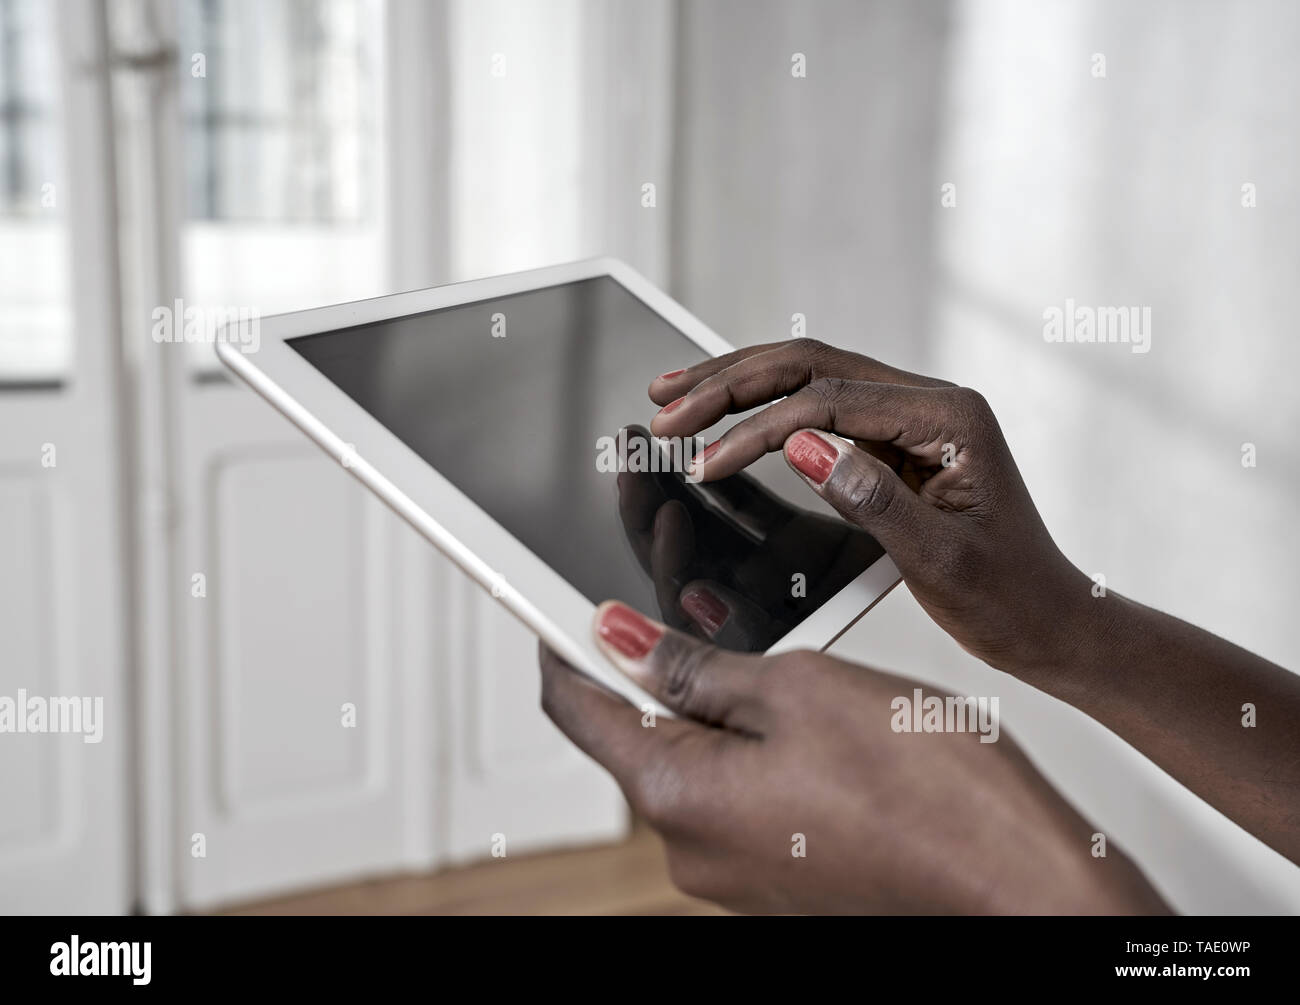 Woman's hands using digital tablet, close-up - Stock Image